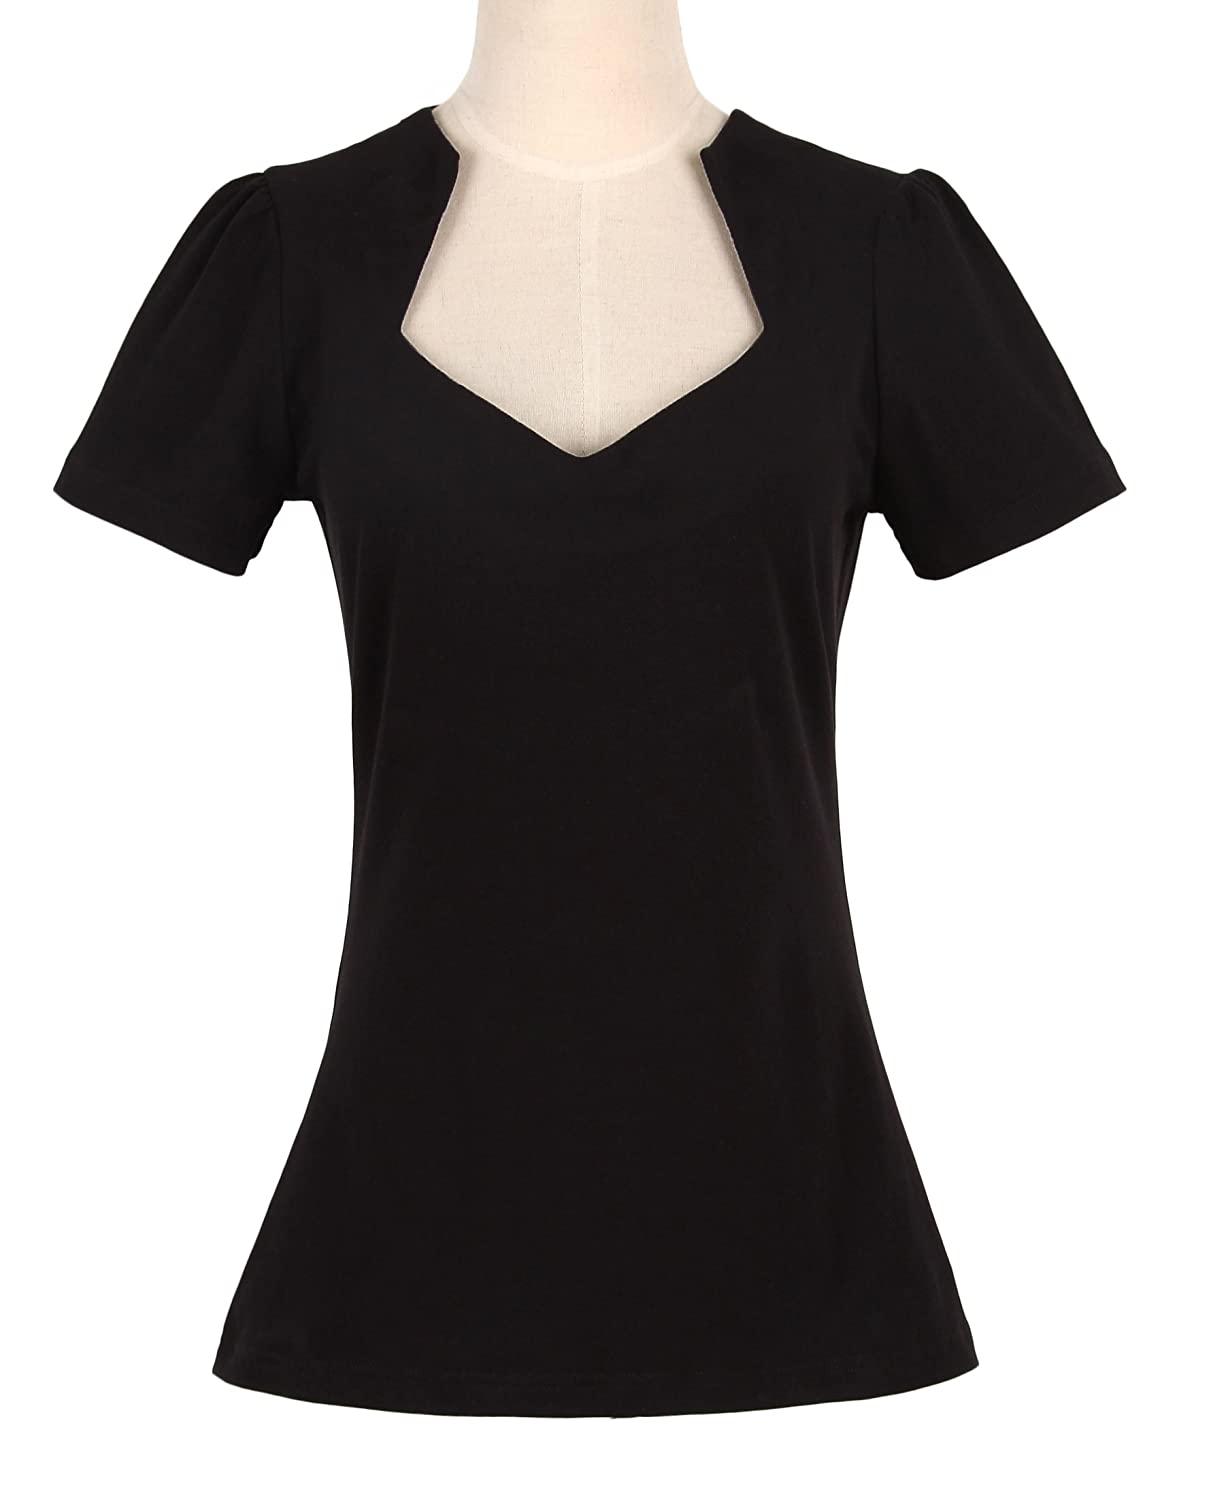 Agent Peggy Carter Costume, Dress, Hats Womens 50s pinup design sexy black tops sweetheart short sleeves vintage style $19.71 AT vintagedancer.com